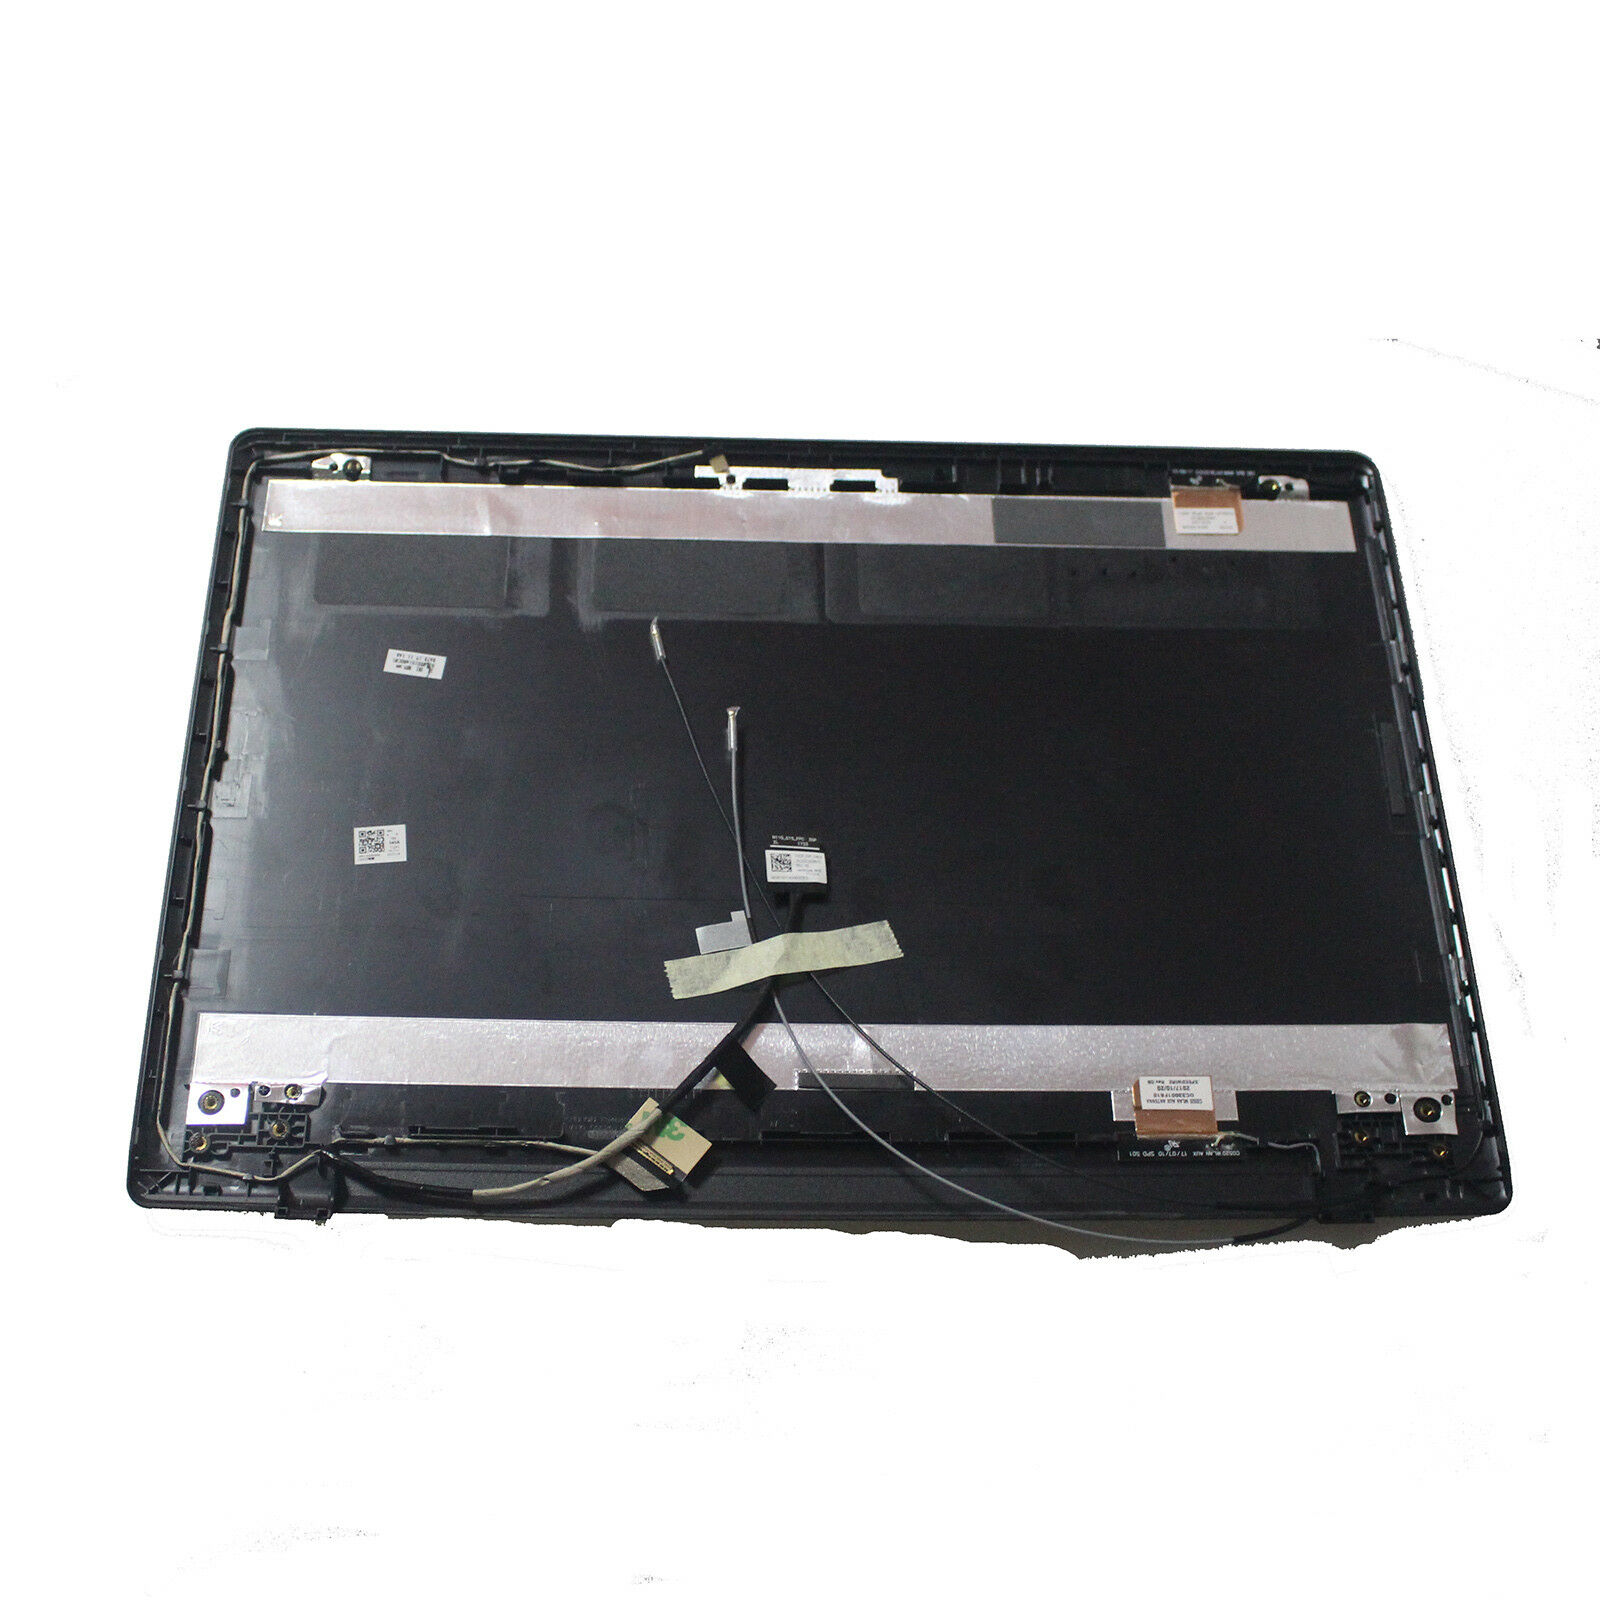 New AP11S000500 for Lenovo IdeaPad 110-15IBR 110-15ACL Top Lcd Rear Cover Back